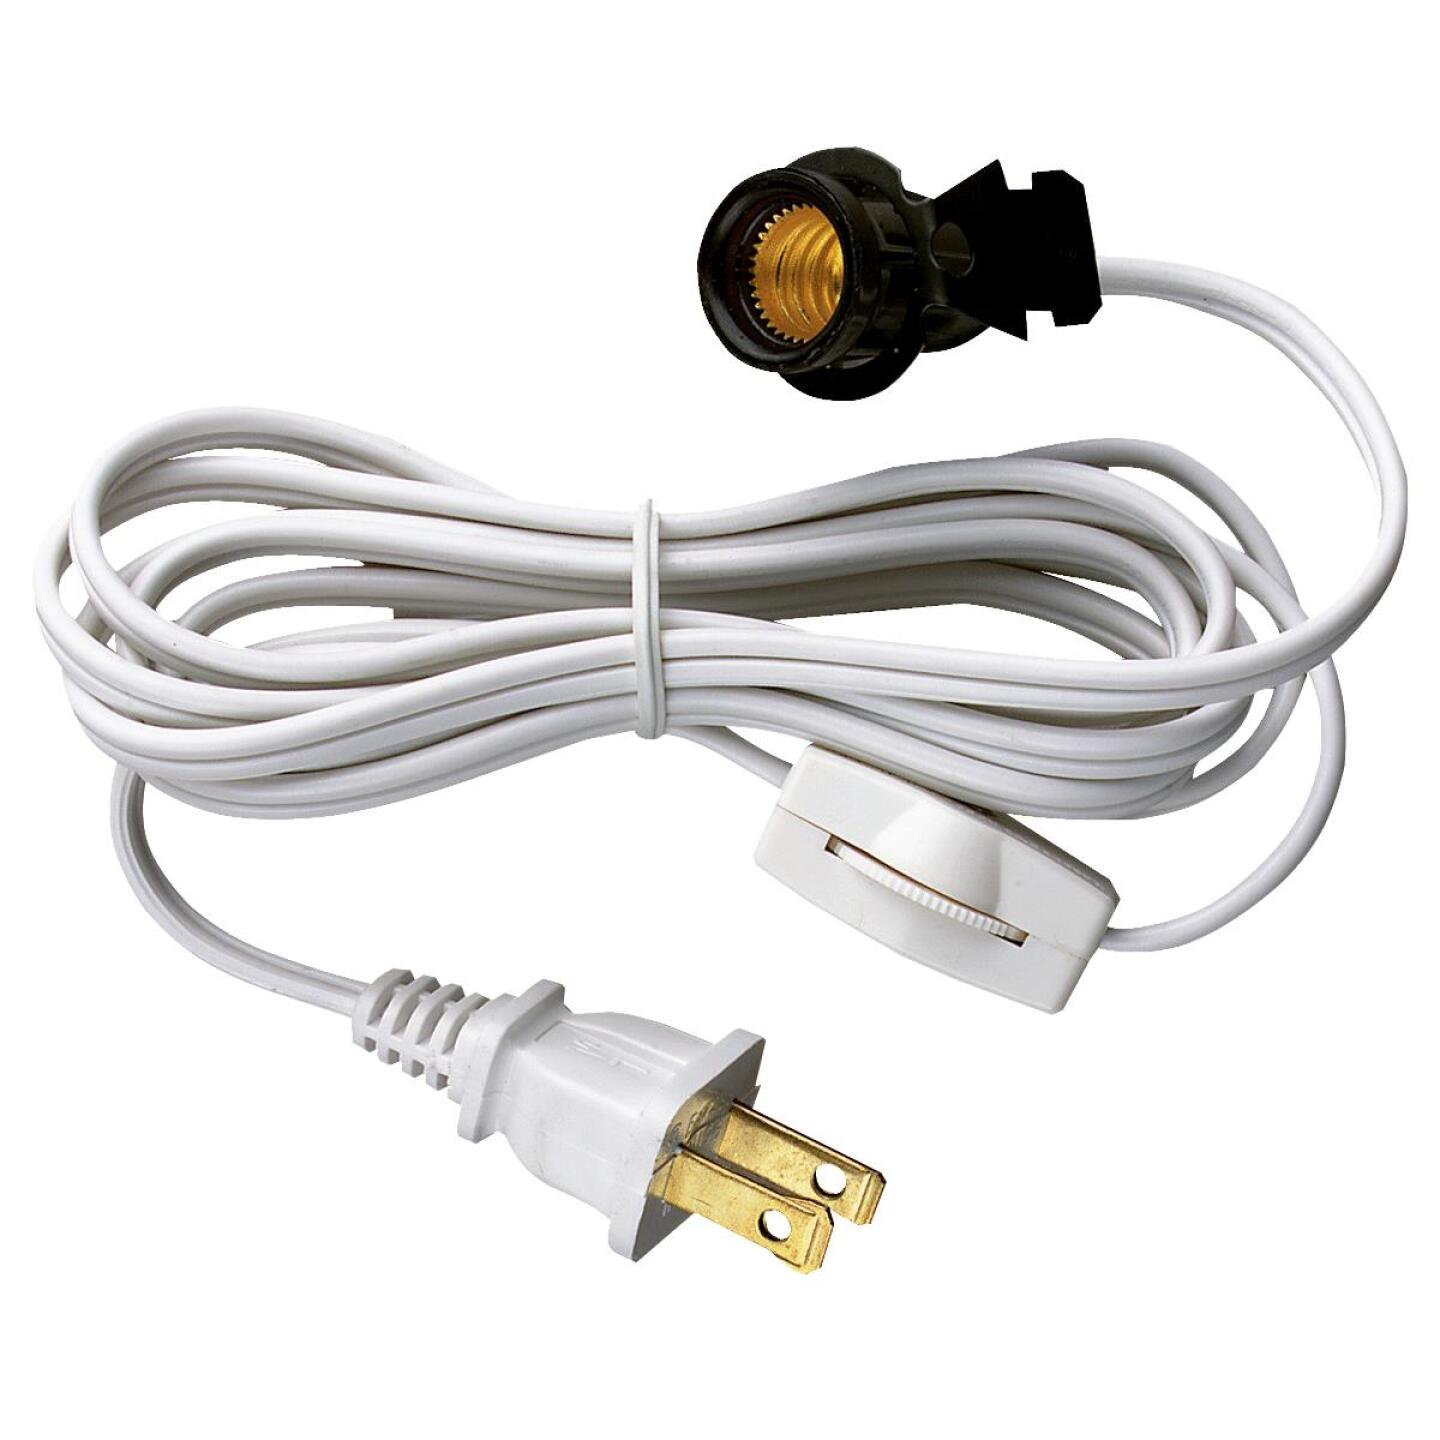 Westinghouse 6 Ft. 18 Ga. White Replacement Lamp Cord with Switch Image 1